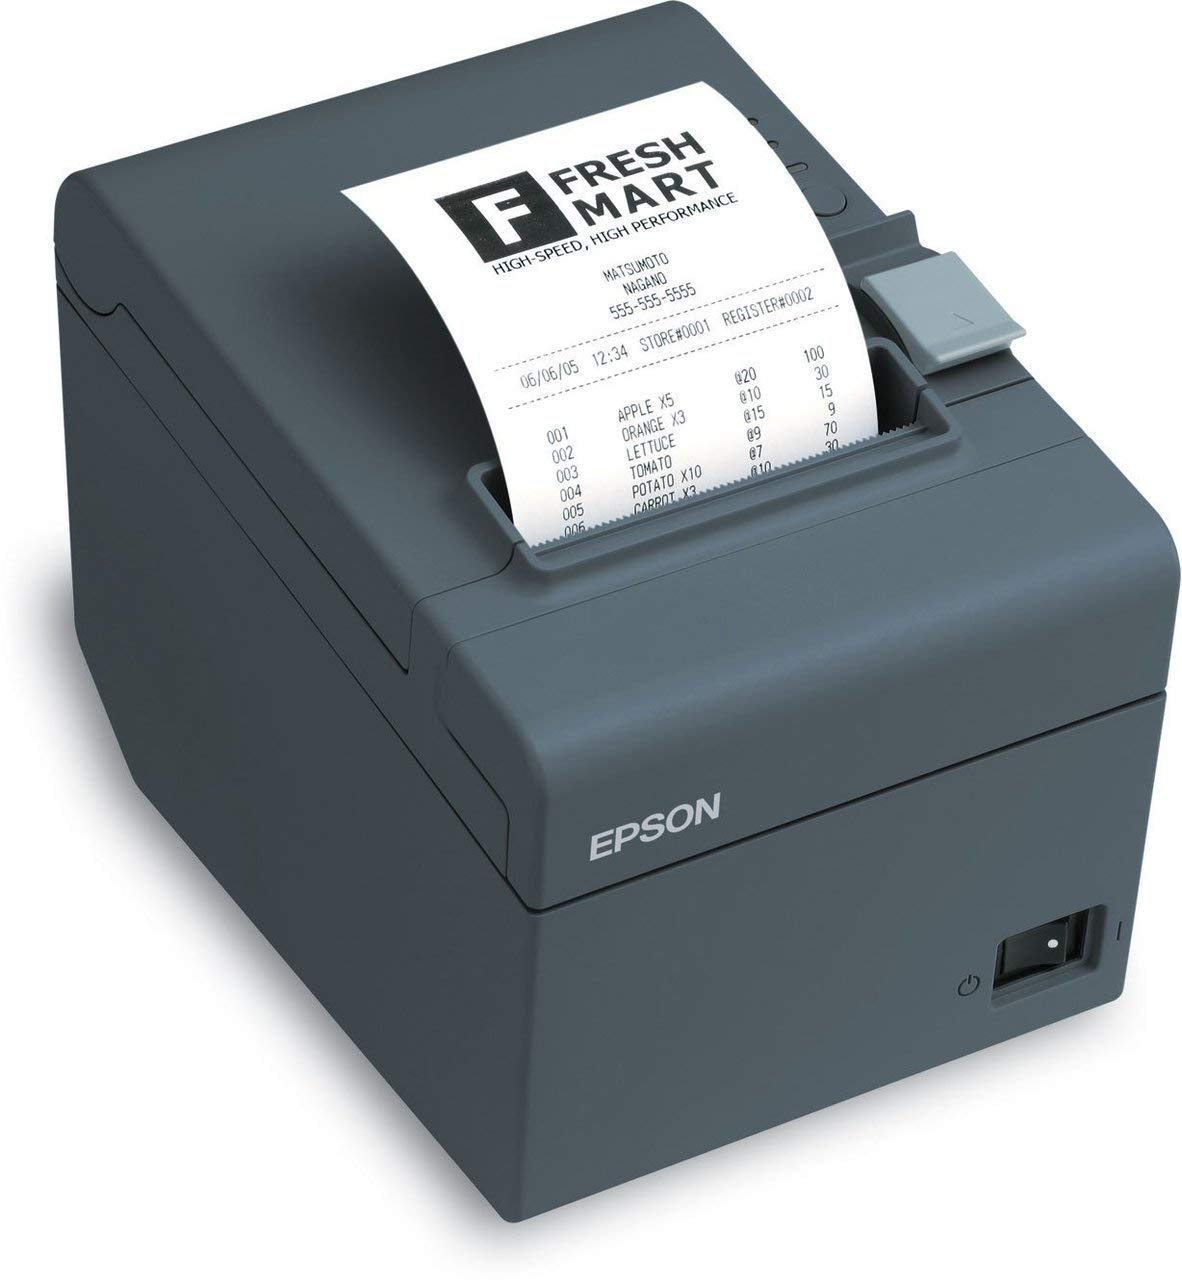 Epson C31CD52A9972 Series TM-T20II Front Loading Thermal Receipt Printer, MPOS, Serial Interface, PS-180 Included, Energy Star Compliant, Dark Gray (Renewed)